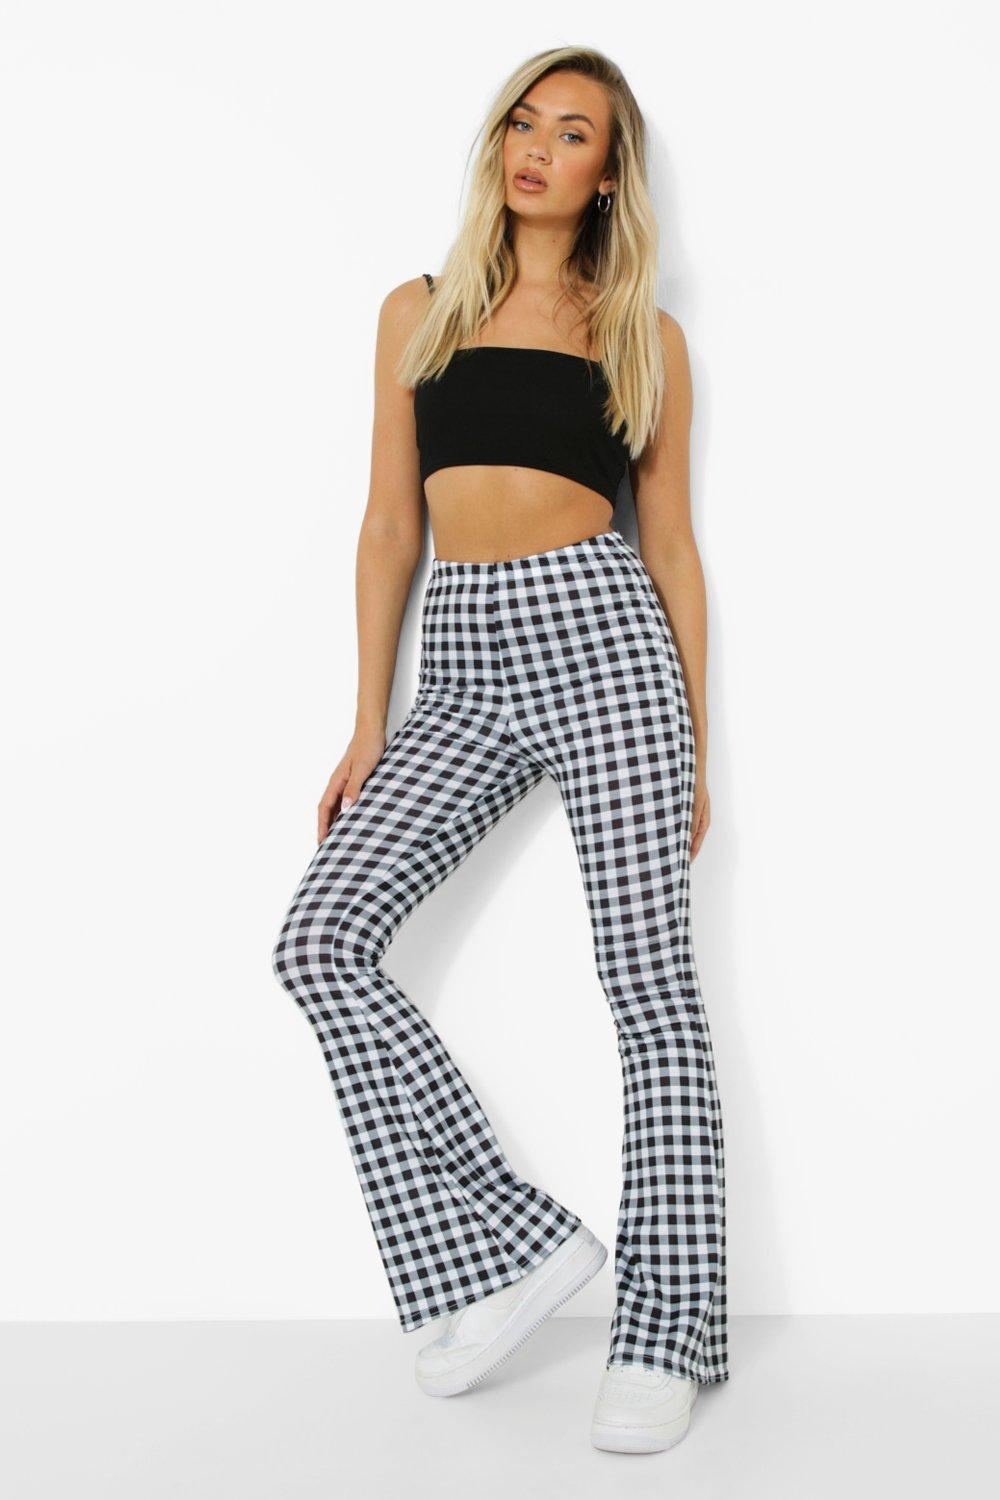 1960s Pants – Top 10 Styles for Women Womens Gingham Flare Jersey Pants - Black - 12 $12.80 AT vintagedancer.com